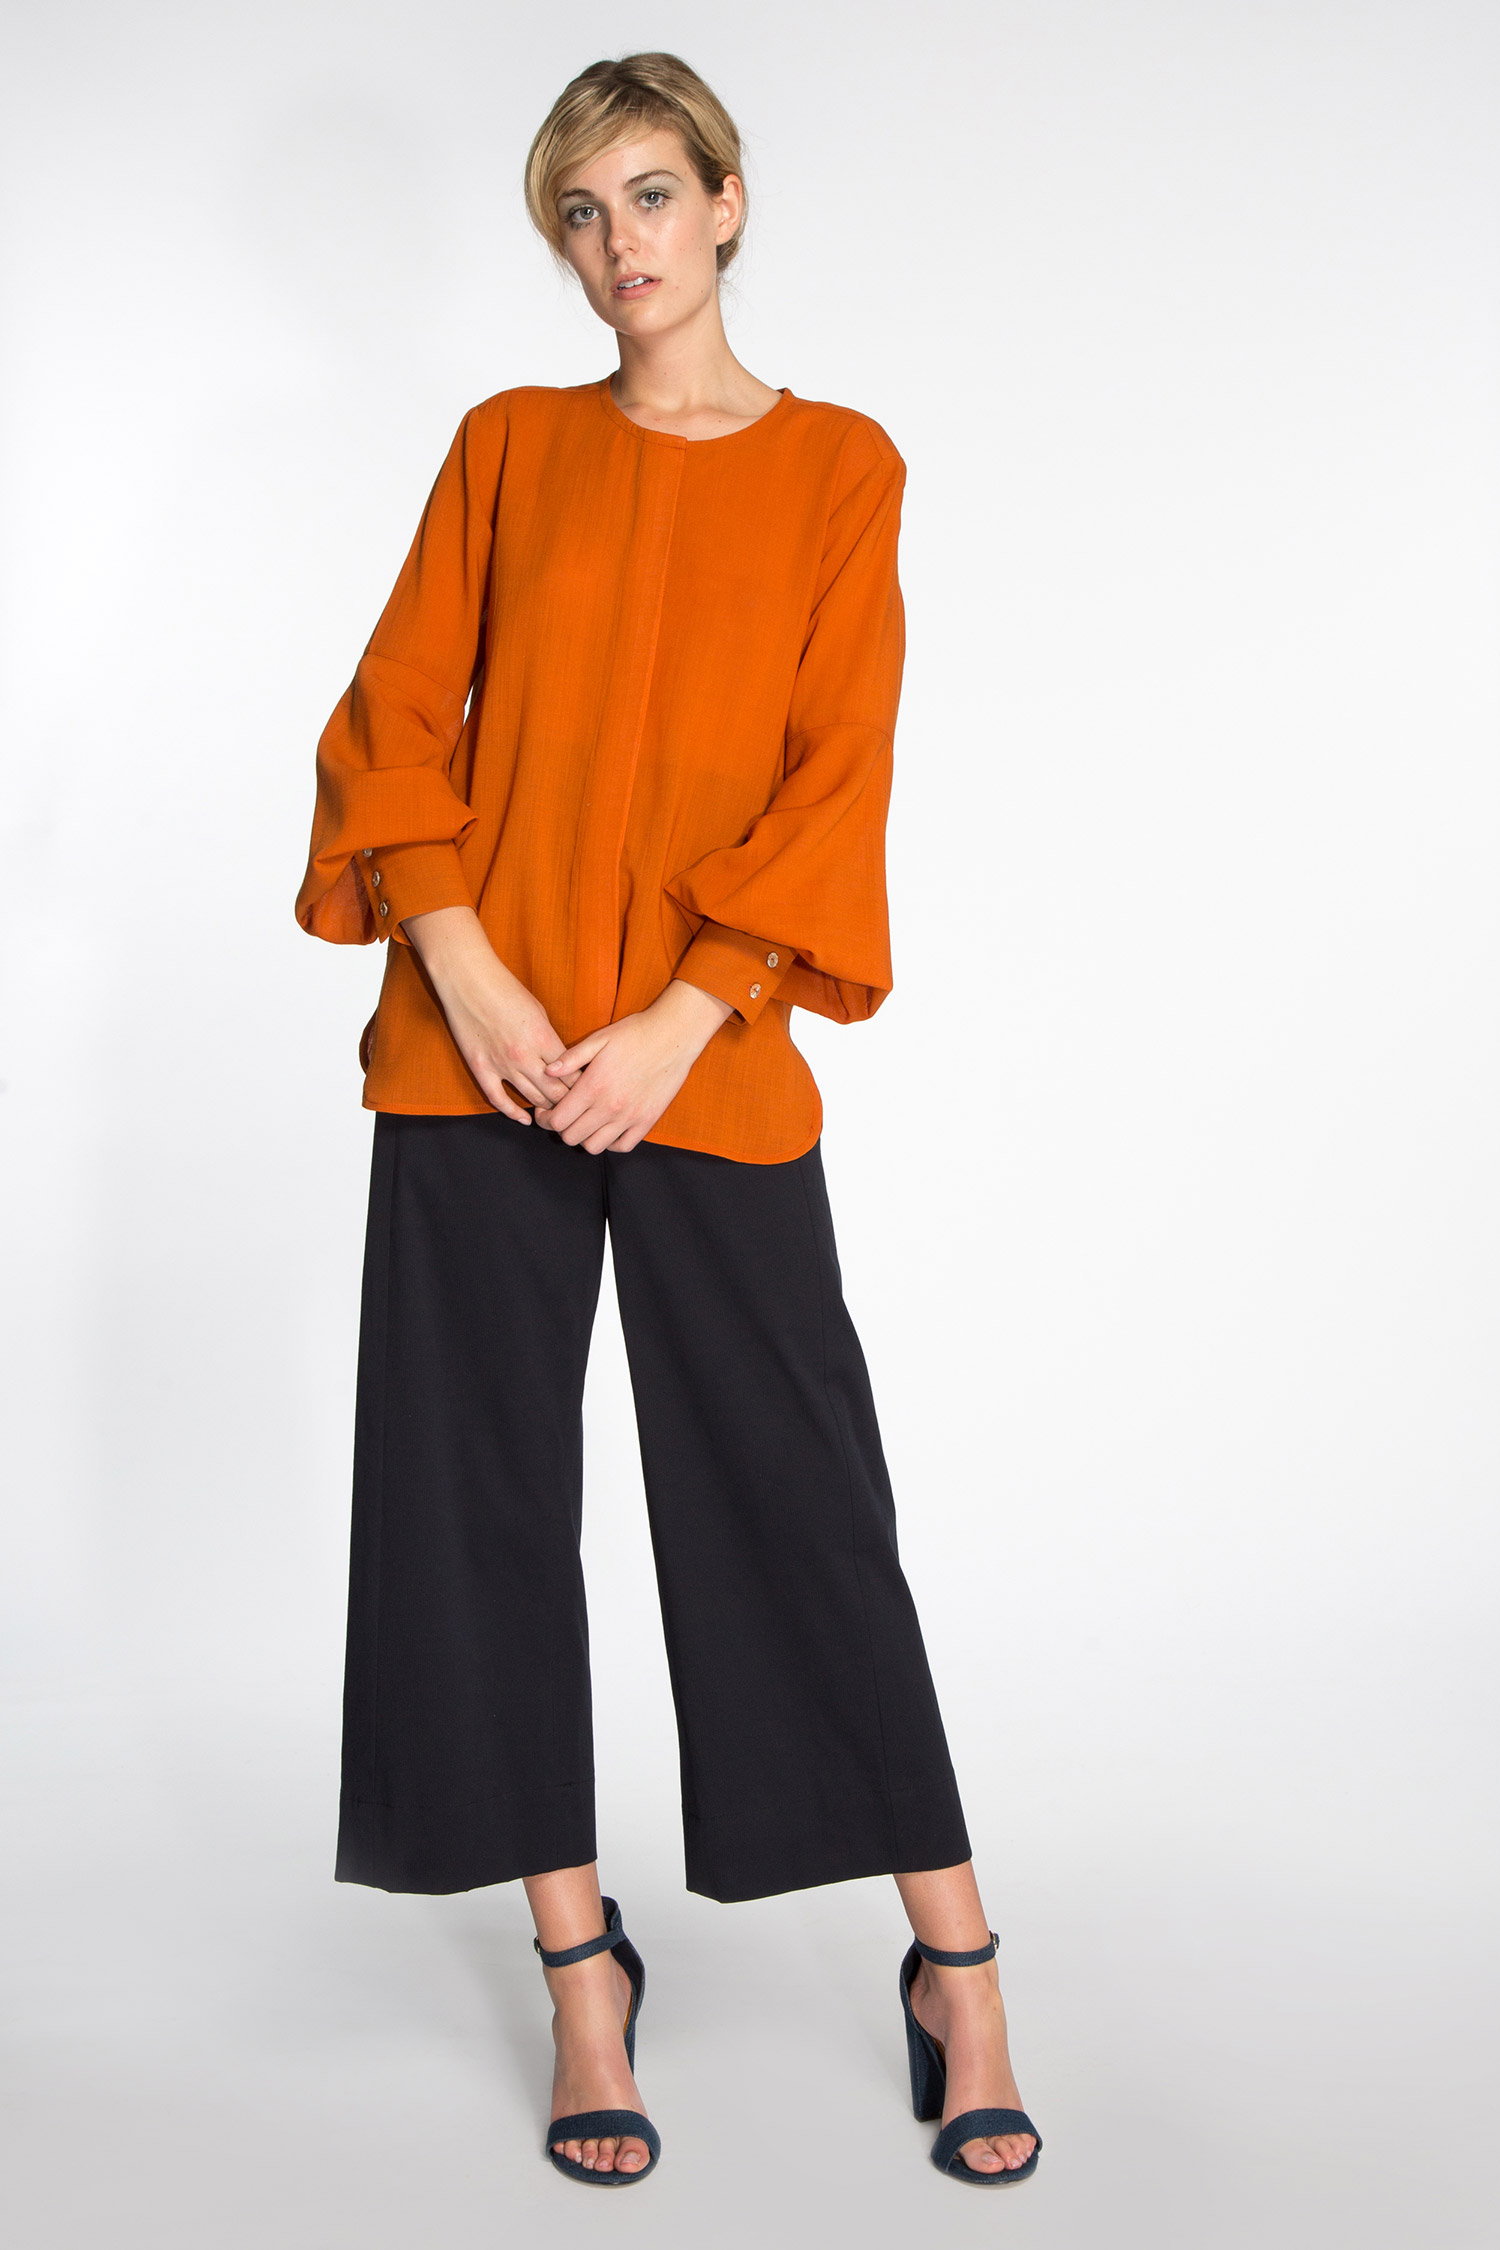 Look13-poet-shirt-snap-pant-8-19.jpg